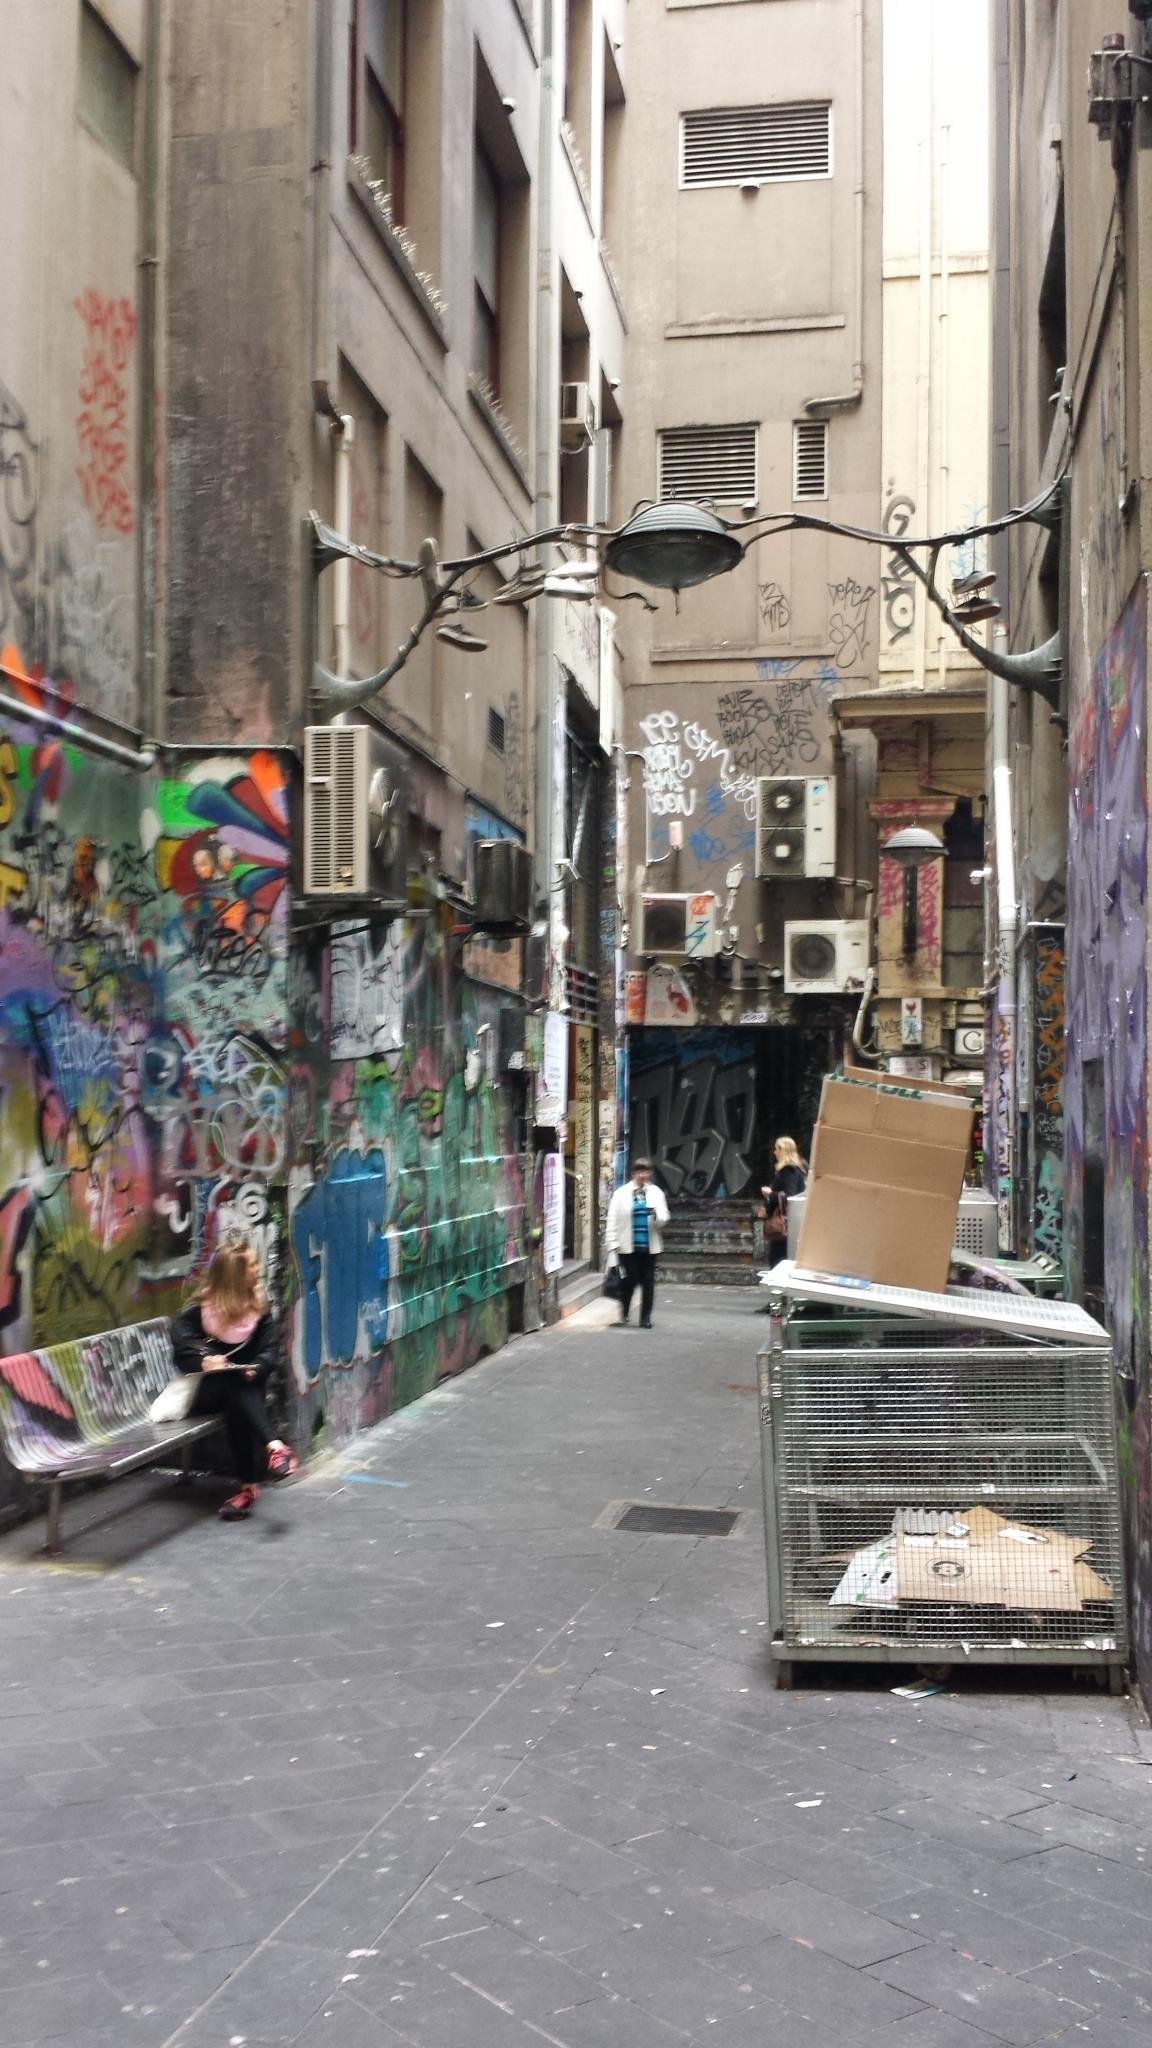 Shelley drawing in the laneway